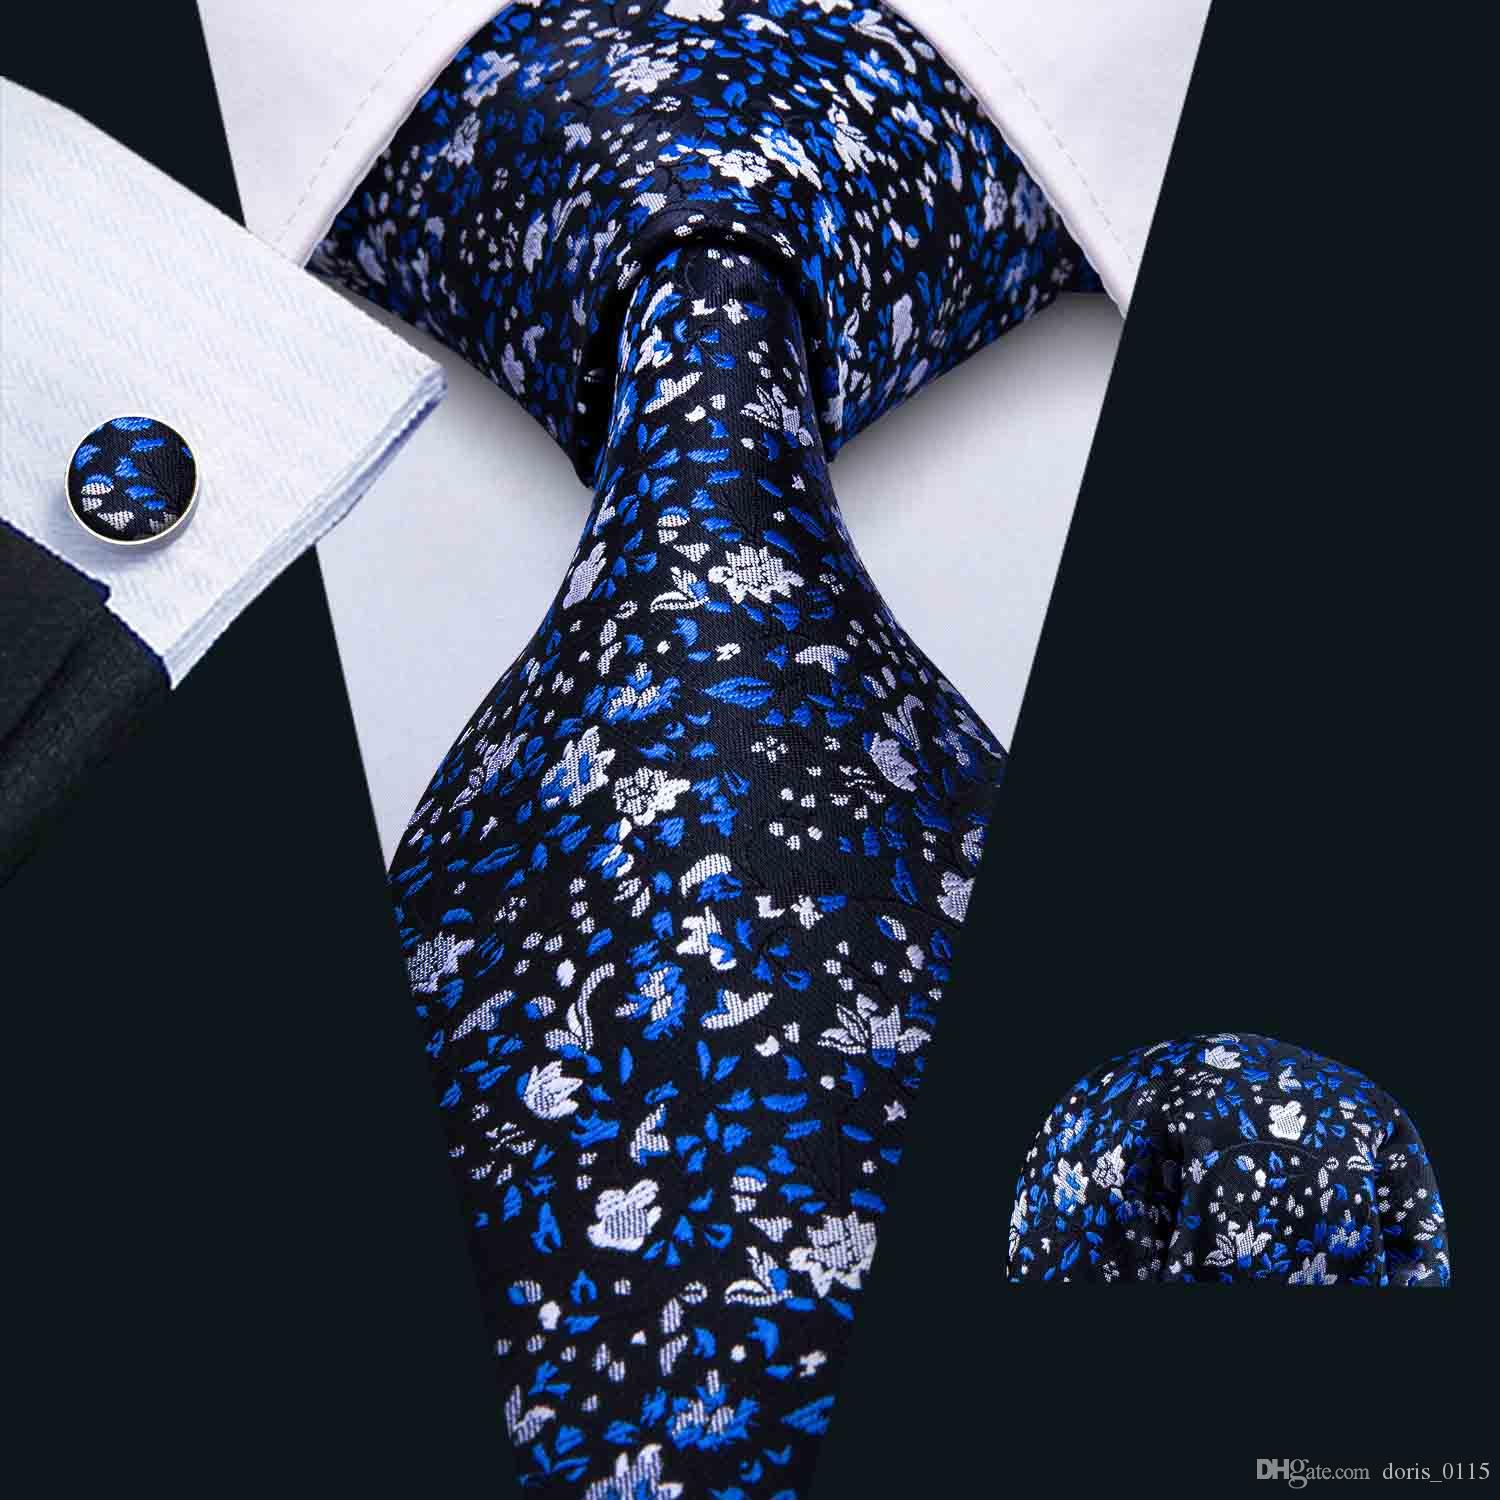 Herren Krawatte Set Dunkelblaue Stickerei Elegant und Neuartig Hankerchief Manschettenknöpfe Set Seide Business Casual Party Krawatte Jacquard Gewebt N-5035